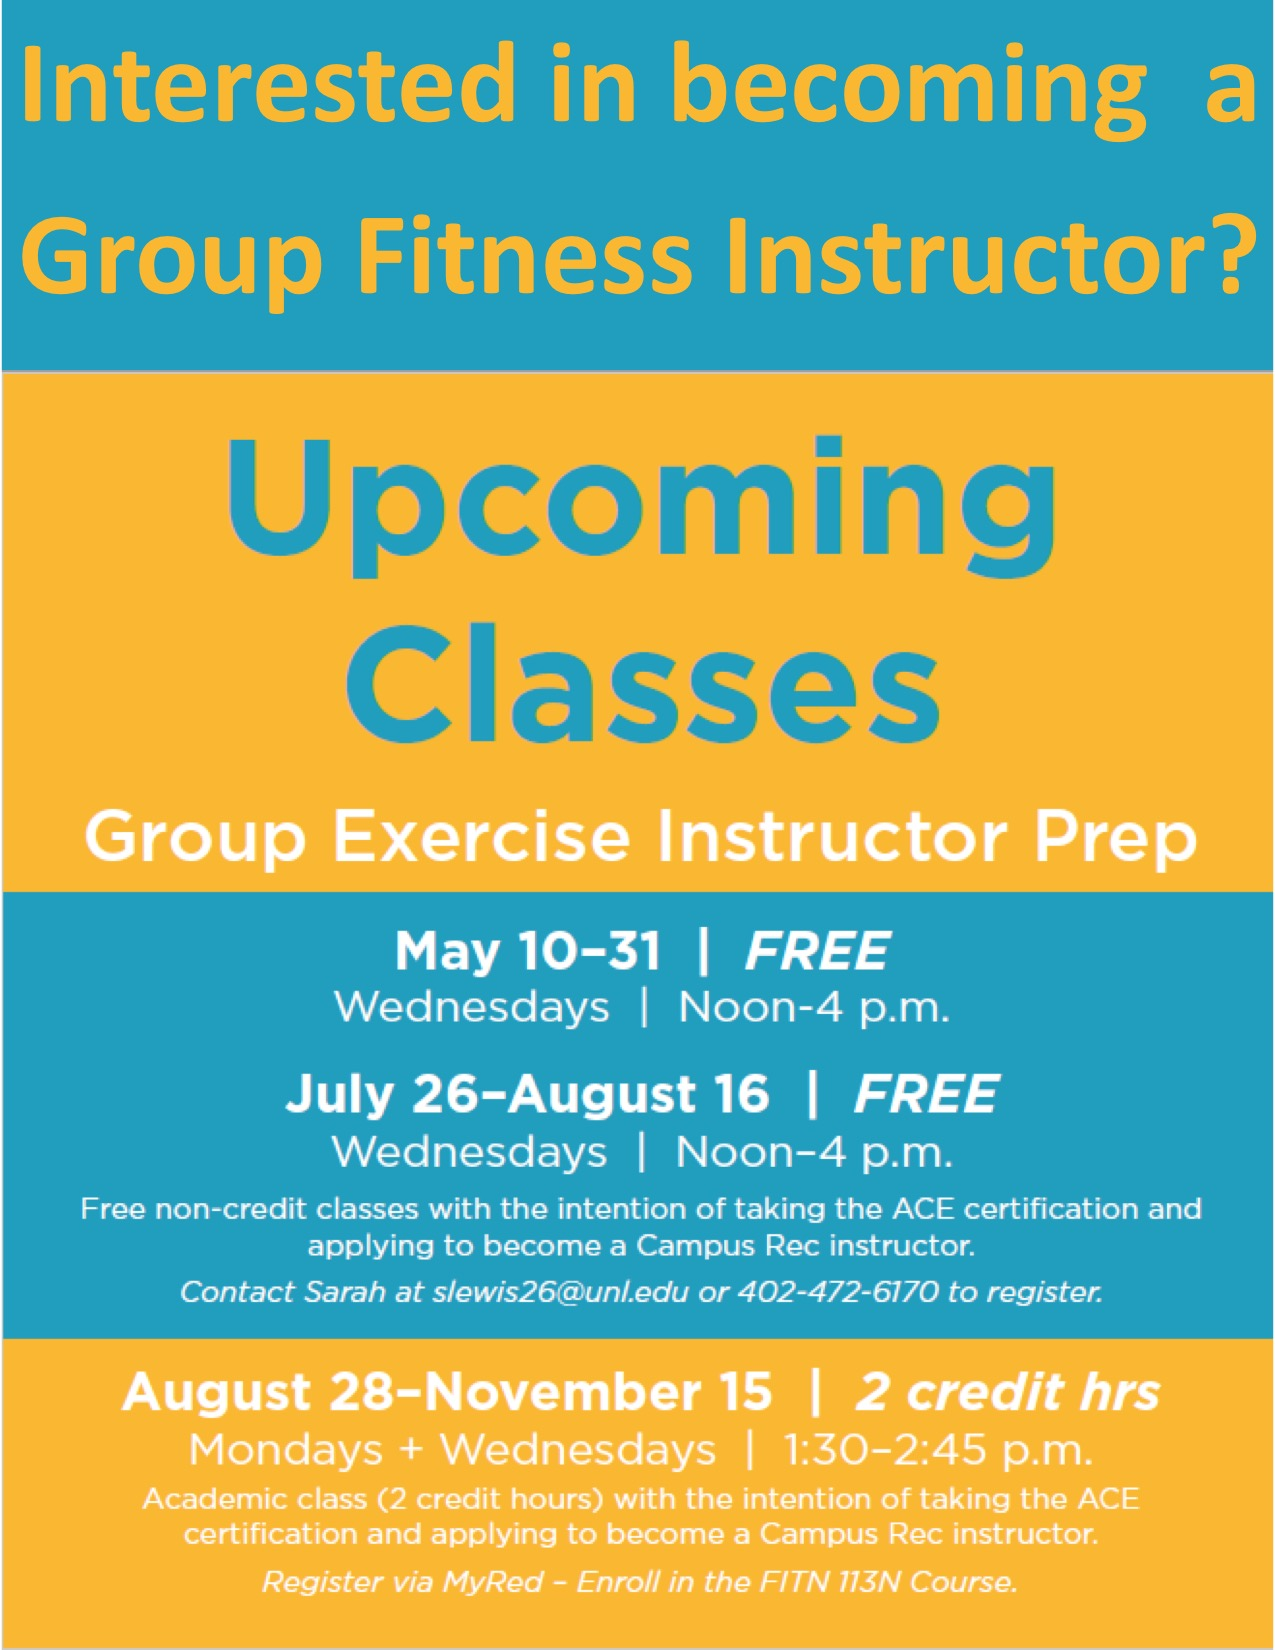 Interested in becoming a Group Fitness Instructor?